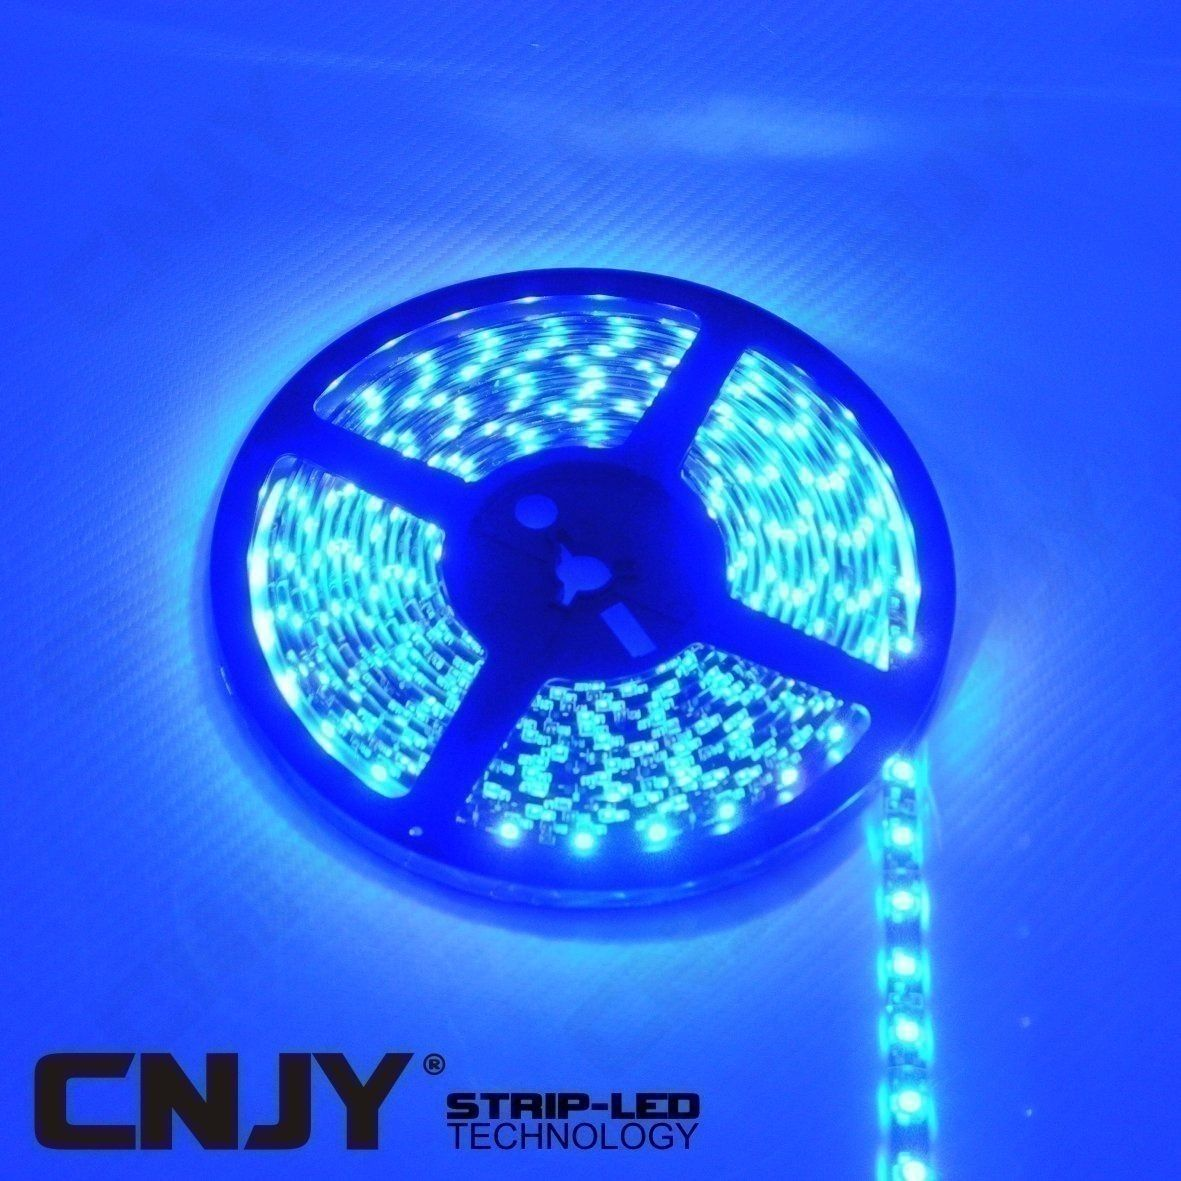 bande, led, flexible, strip, ruban, rouleau, decoration, BLEU,12v, bar, led, del, smd, etanche, aquarium, tuning